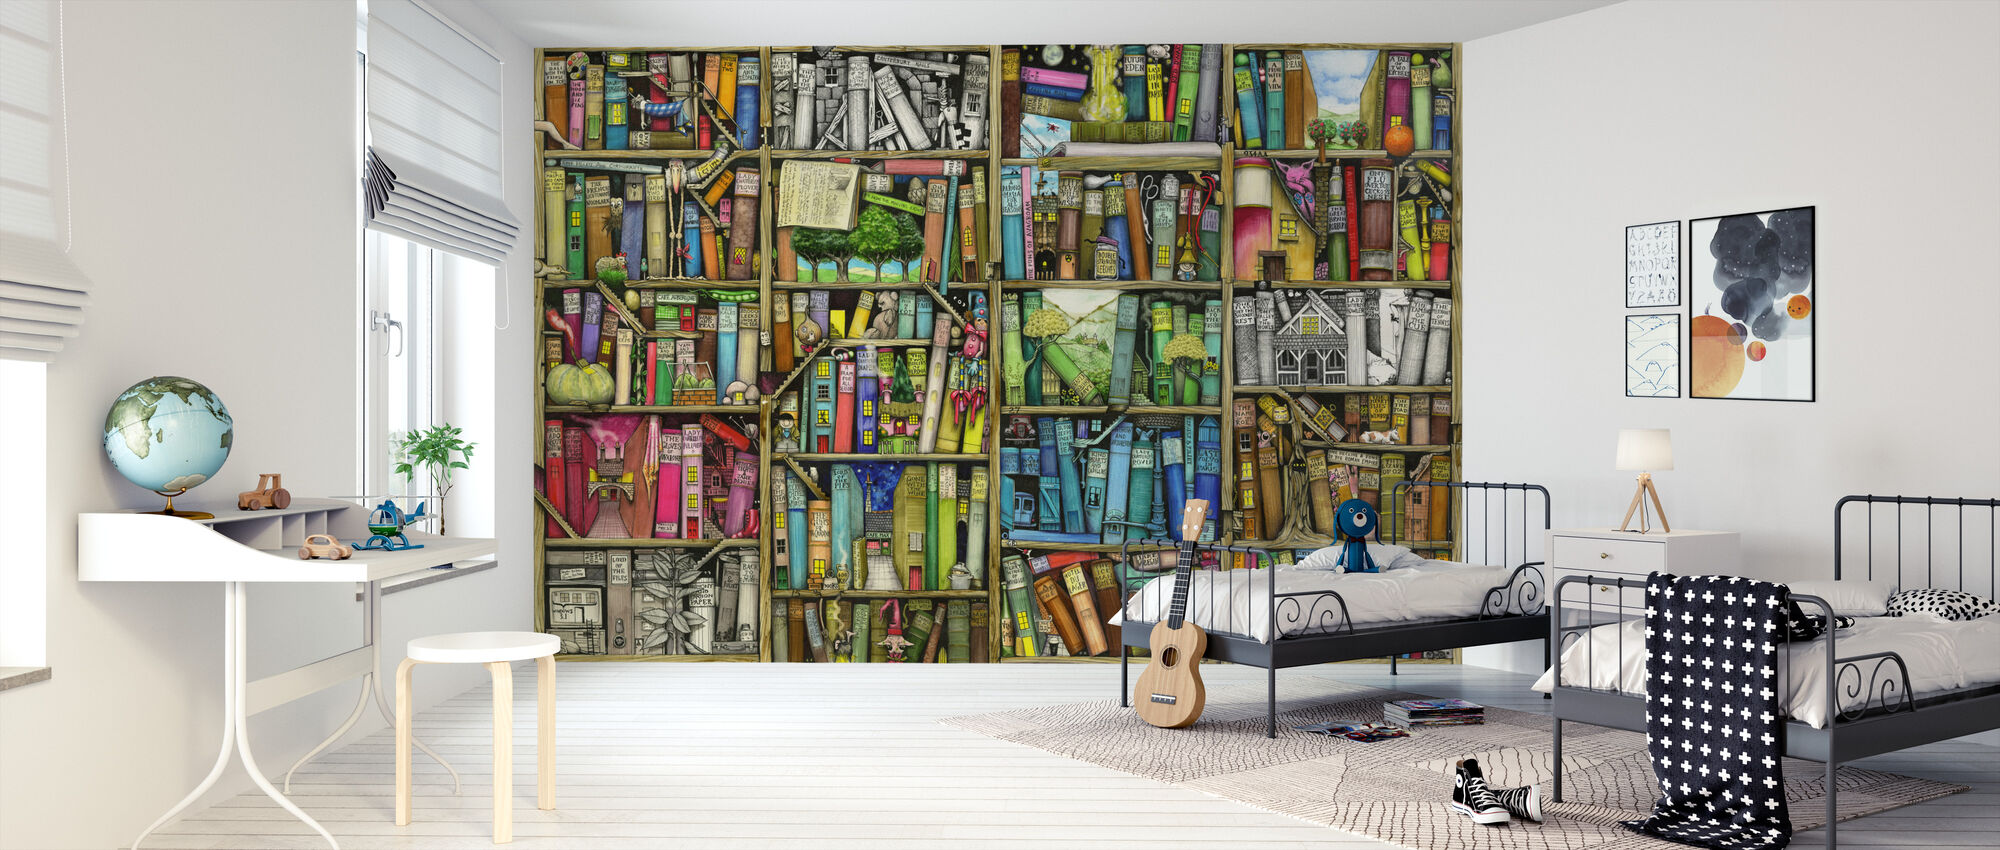 Fantasy Bookshelf - Wallpaper - Kids Room